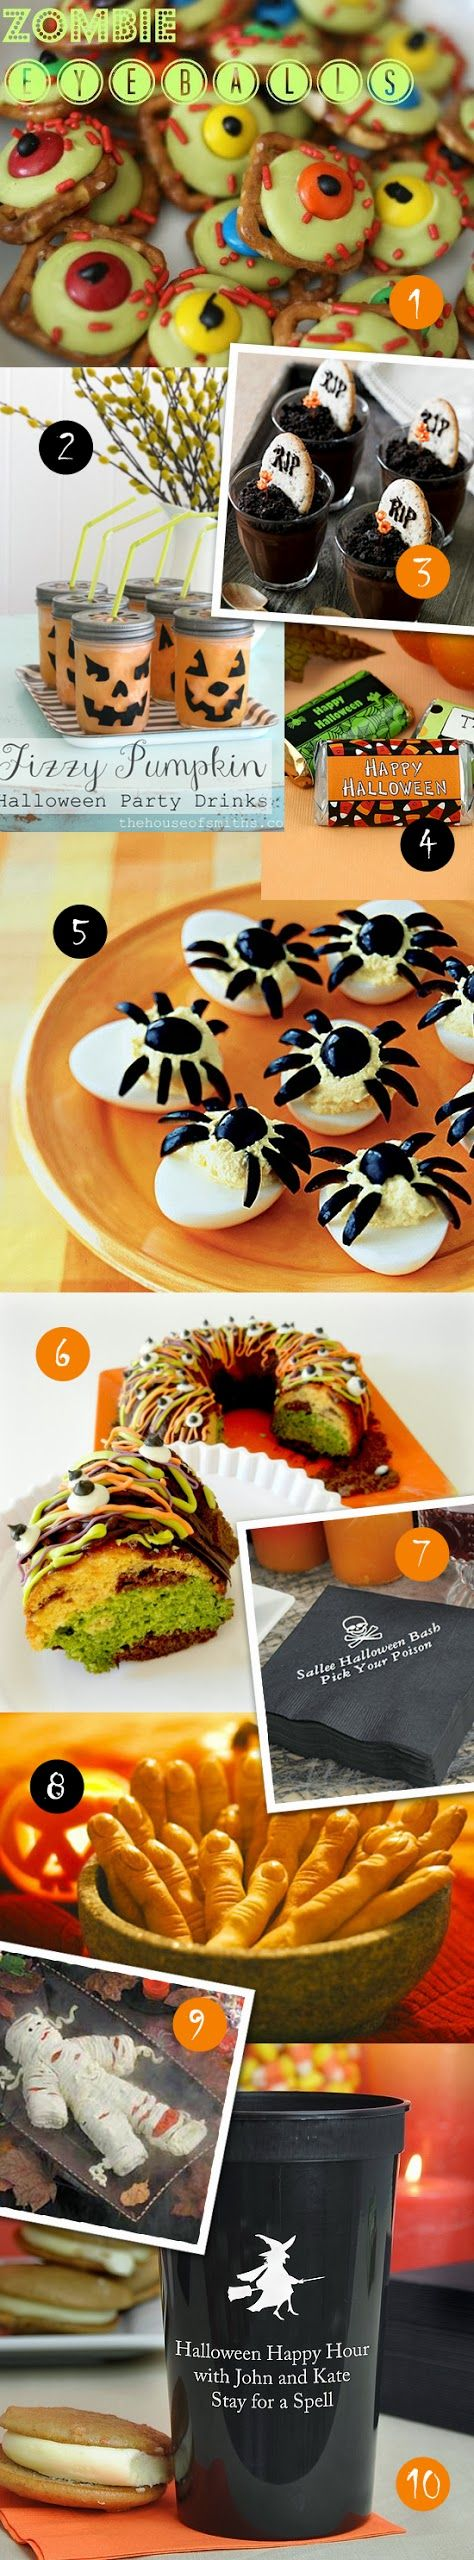 10 Easy Halloween Treats  OMG, look at those deviled spider eggs !~!~!  ;-)